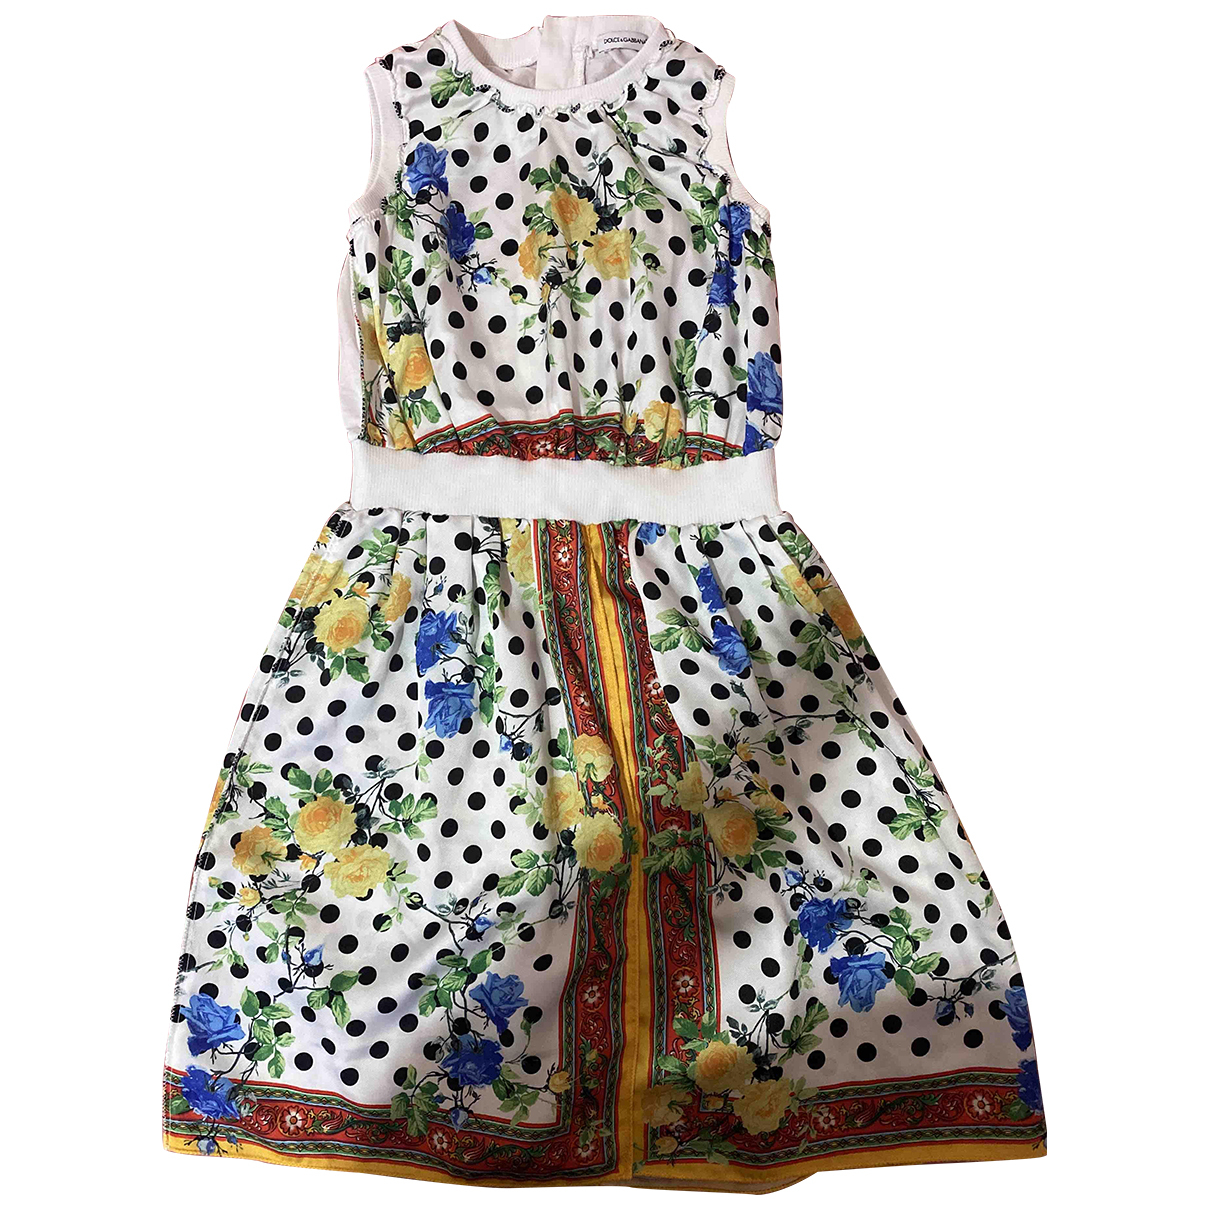 Dolce & Gabbana N White Silk dress for Kids 10 years - up to 142cm FR